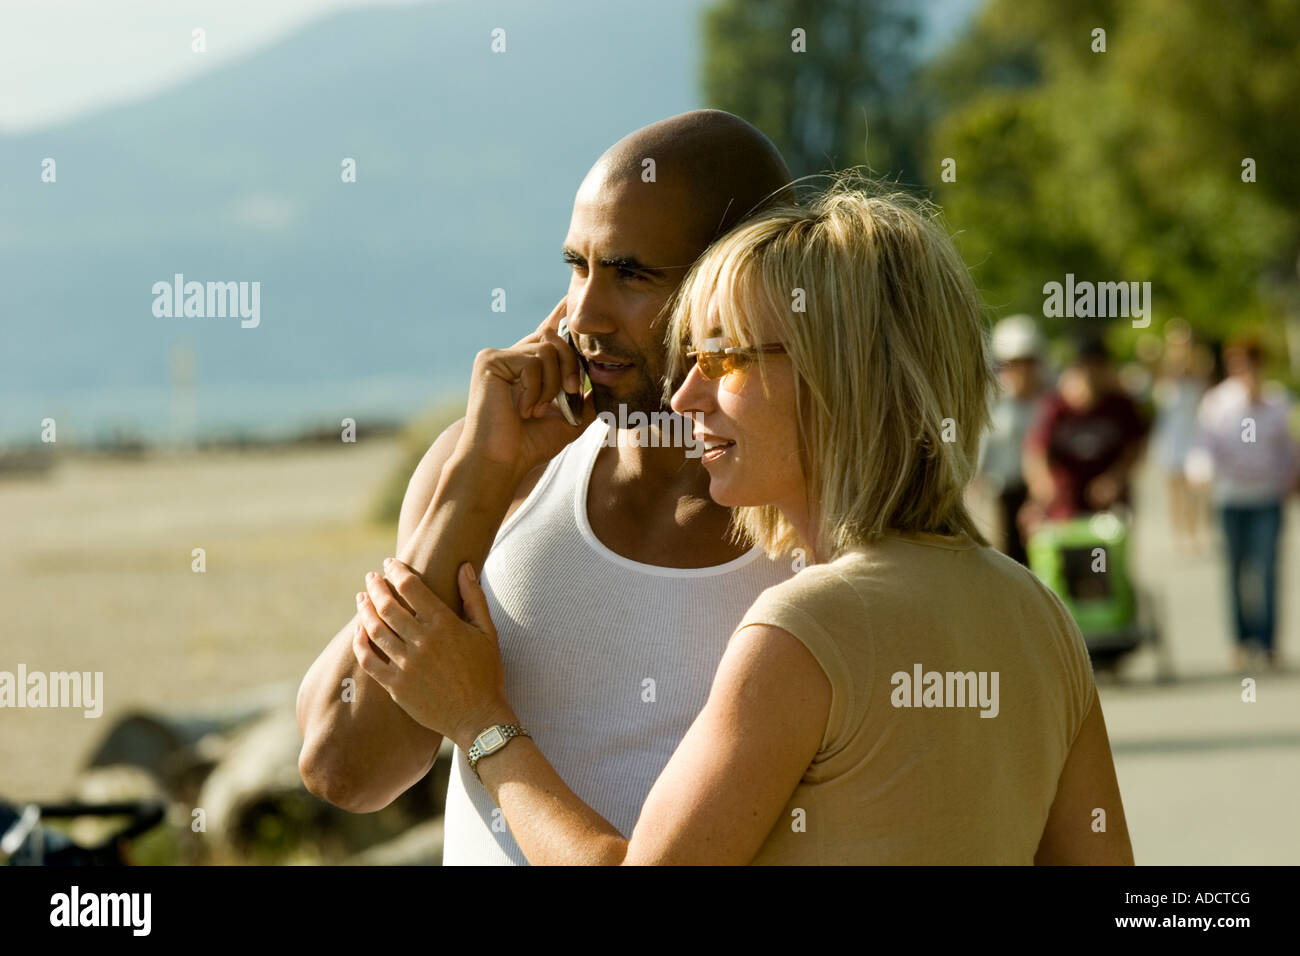 Remarkable topic interracial love photography consider